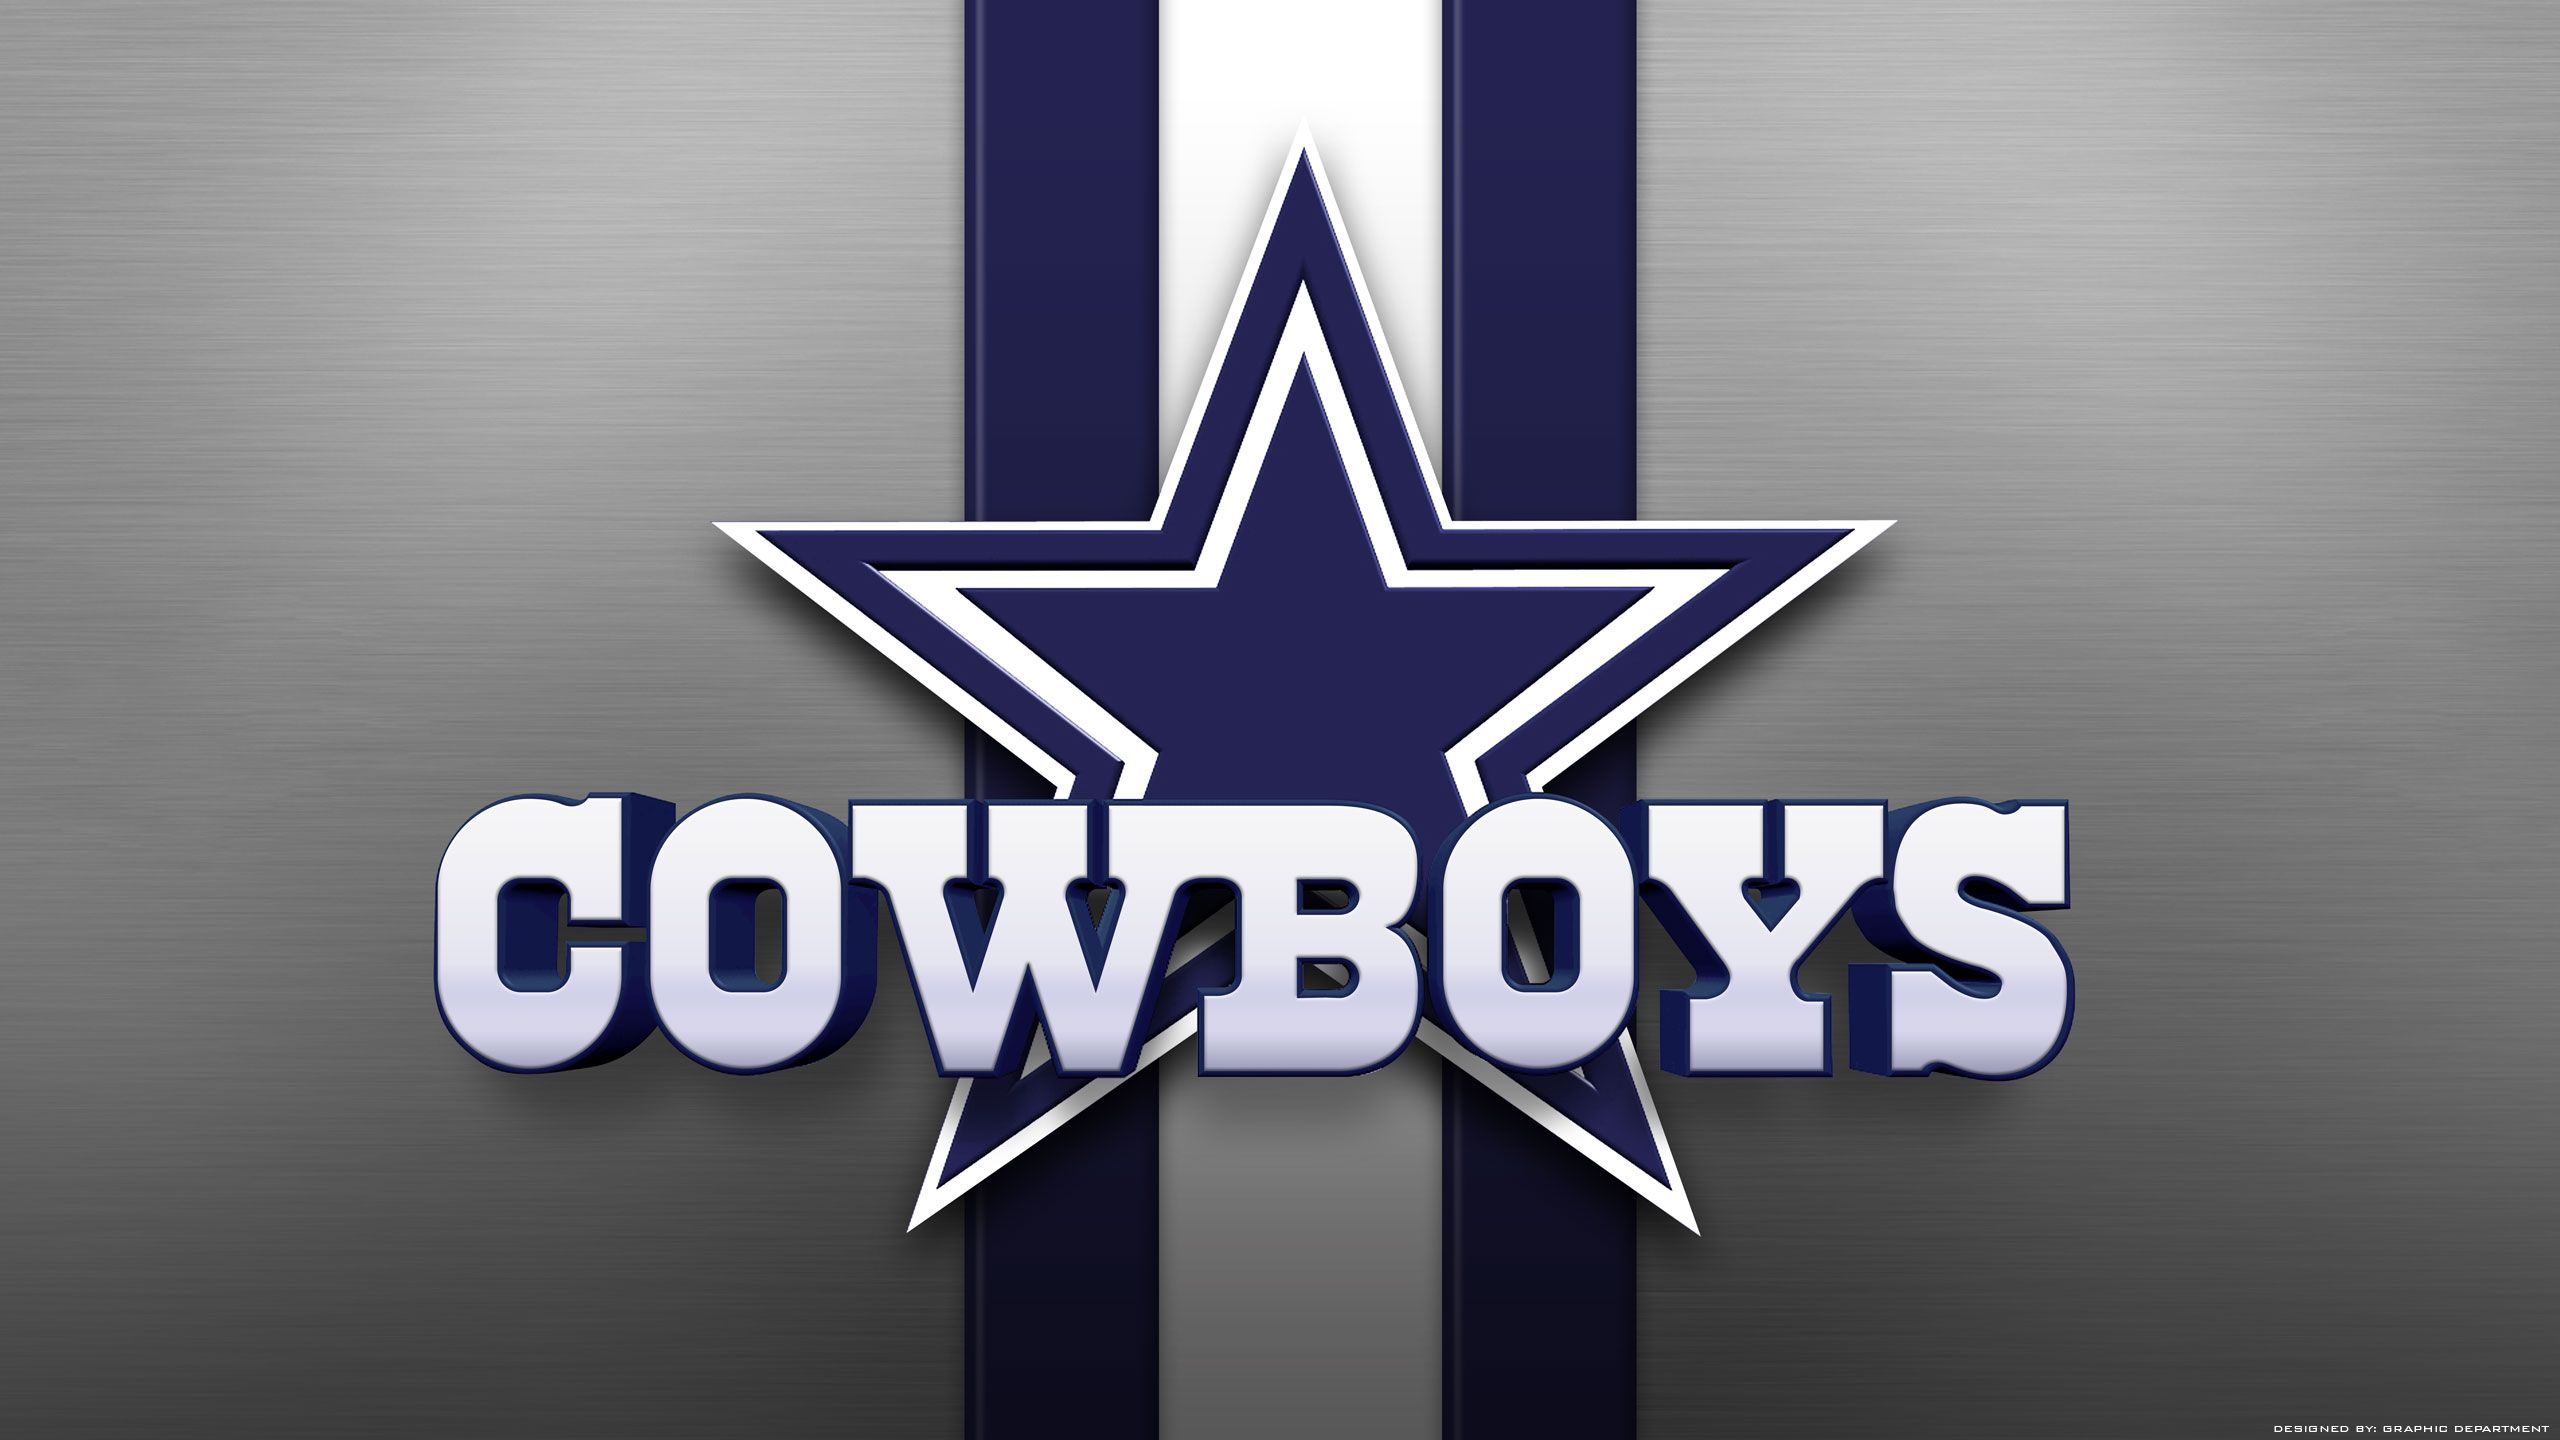 Dallas Cowboys Wallpaper For IPhone 2560x1440